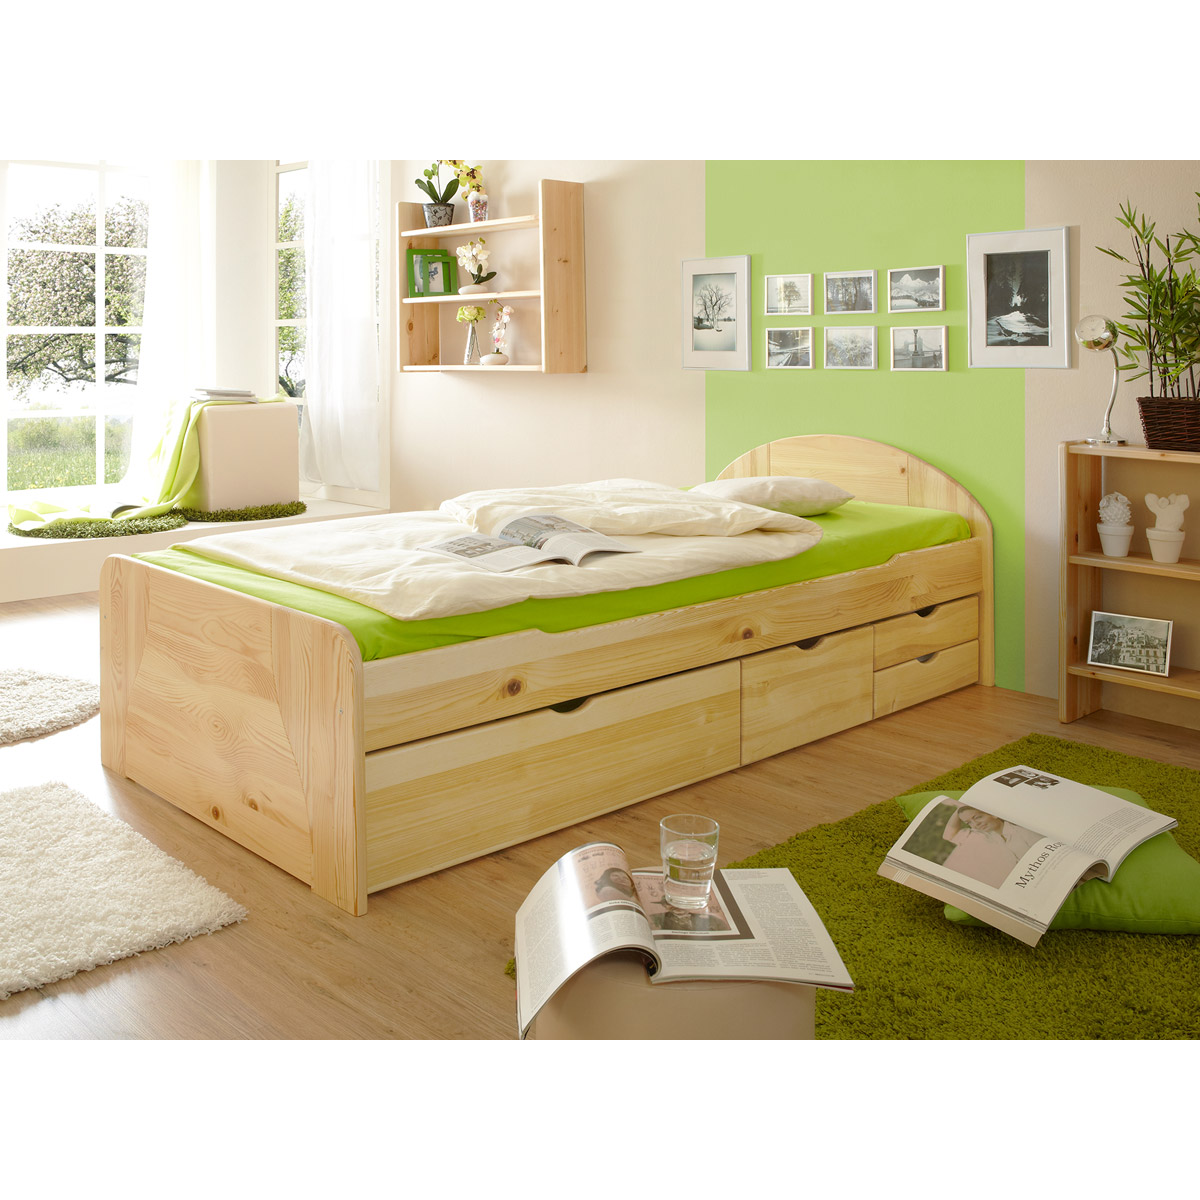 ticaa erna schubkastenbett kiefer natur 100x200 cm. Black Bedroom Furniture Sets. Home Design Ideas